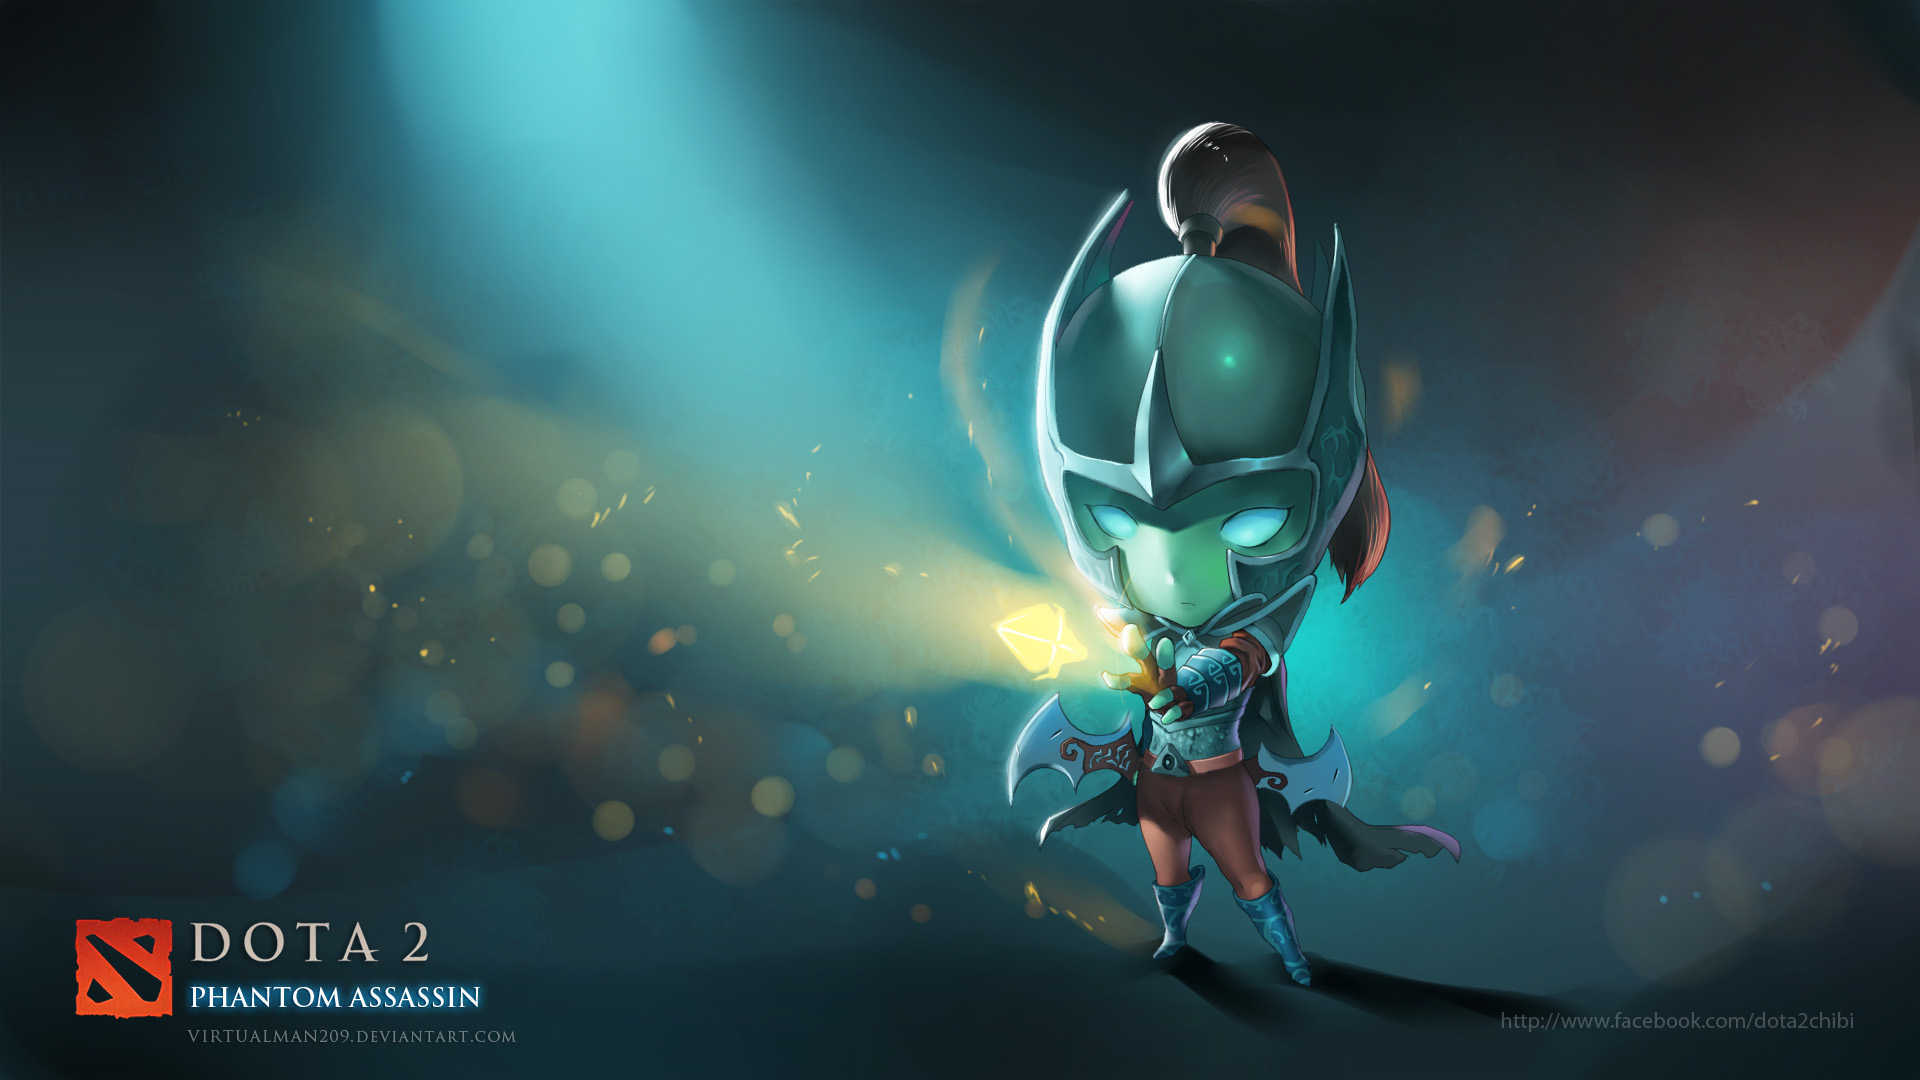 Dota 2 Wallpaper – Are Incredibles These